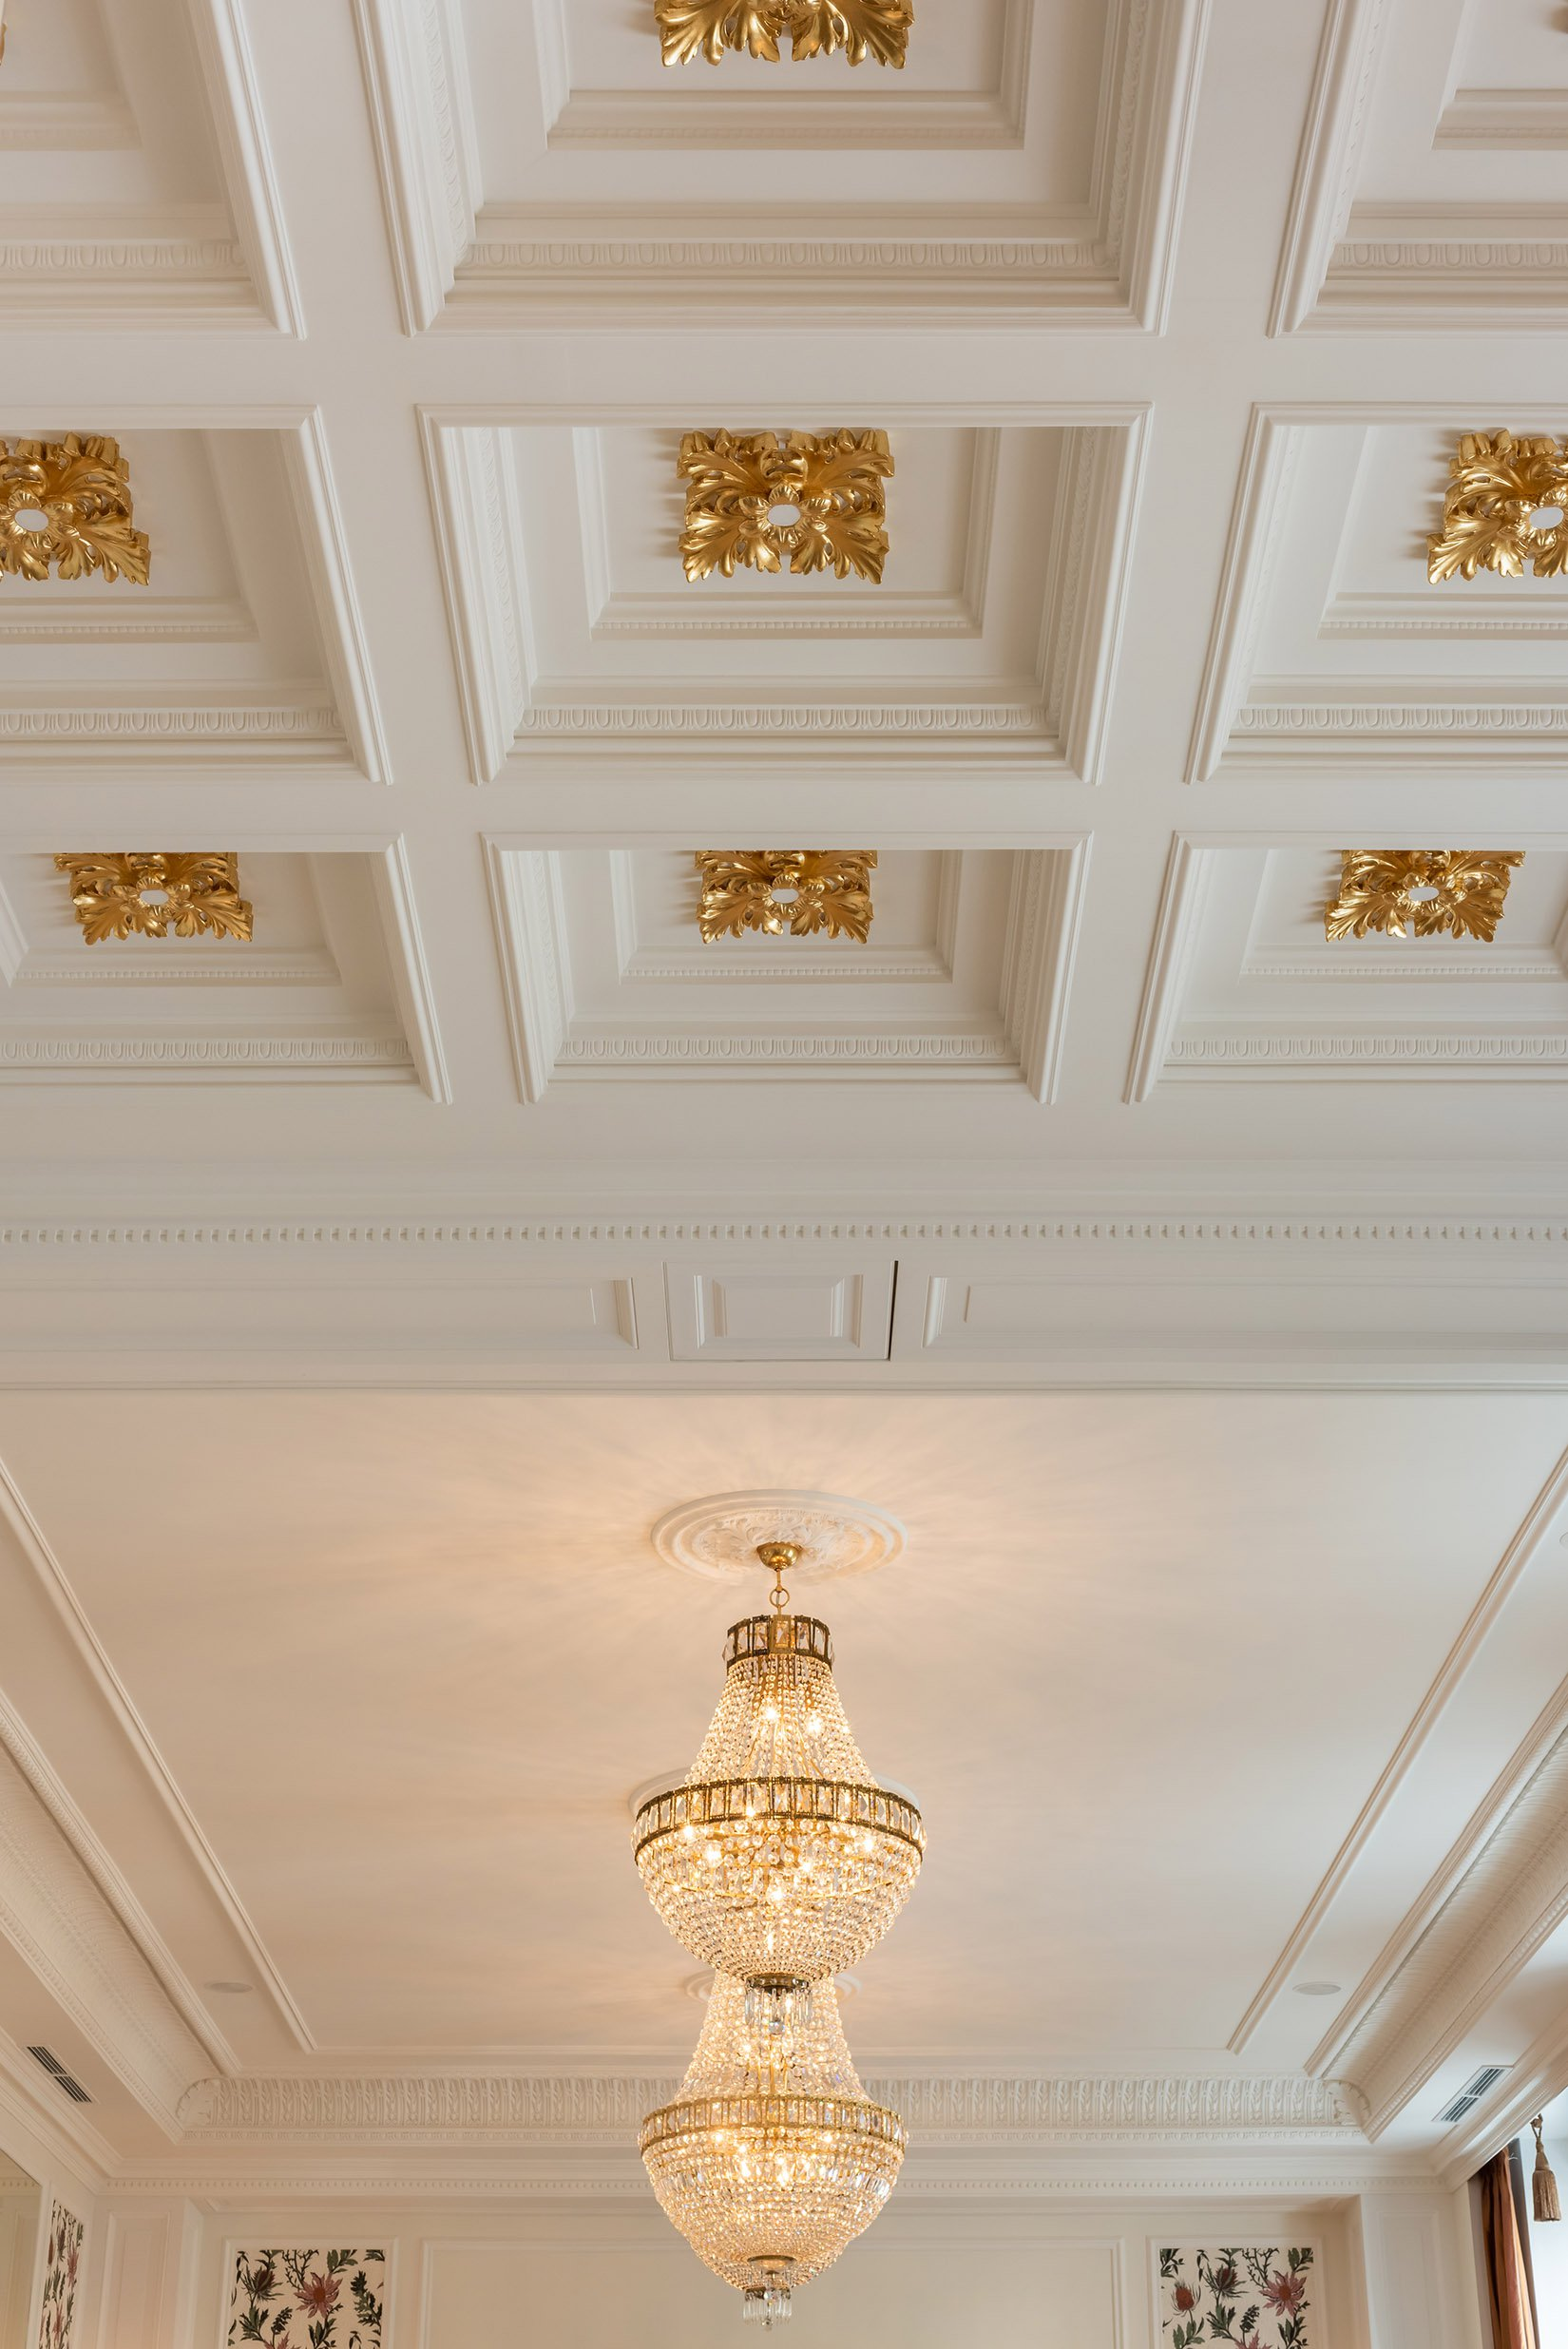 Conference room decorated ceiling photo Fryderyk Concert hall